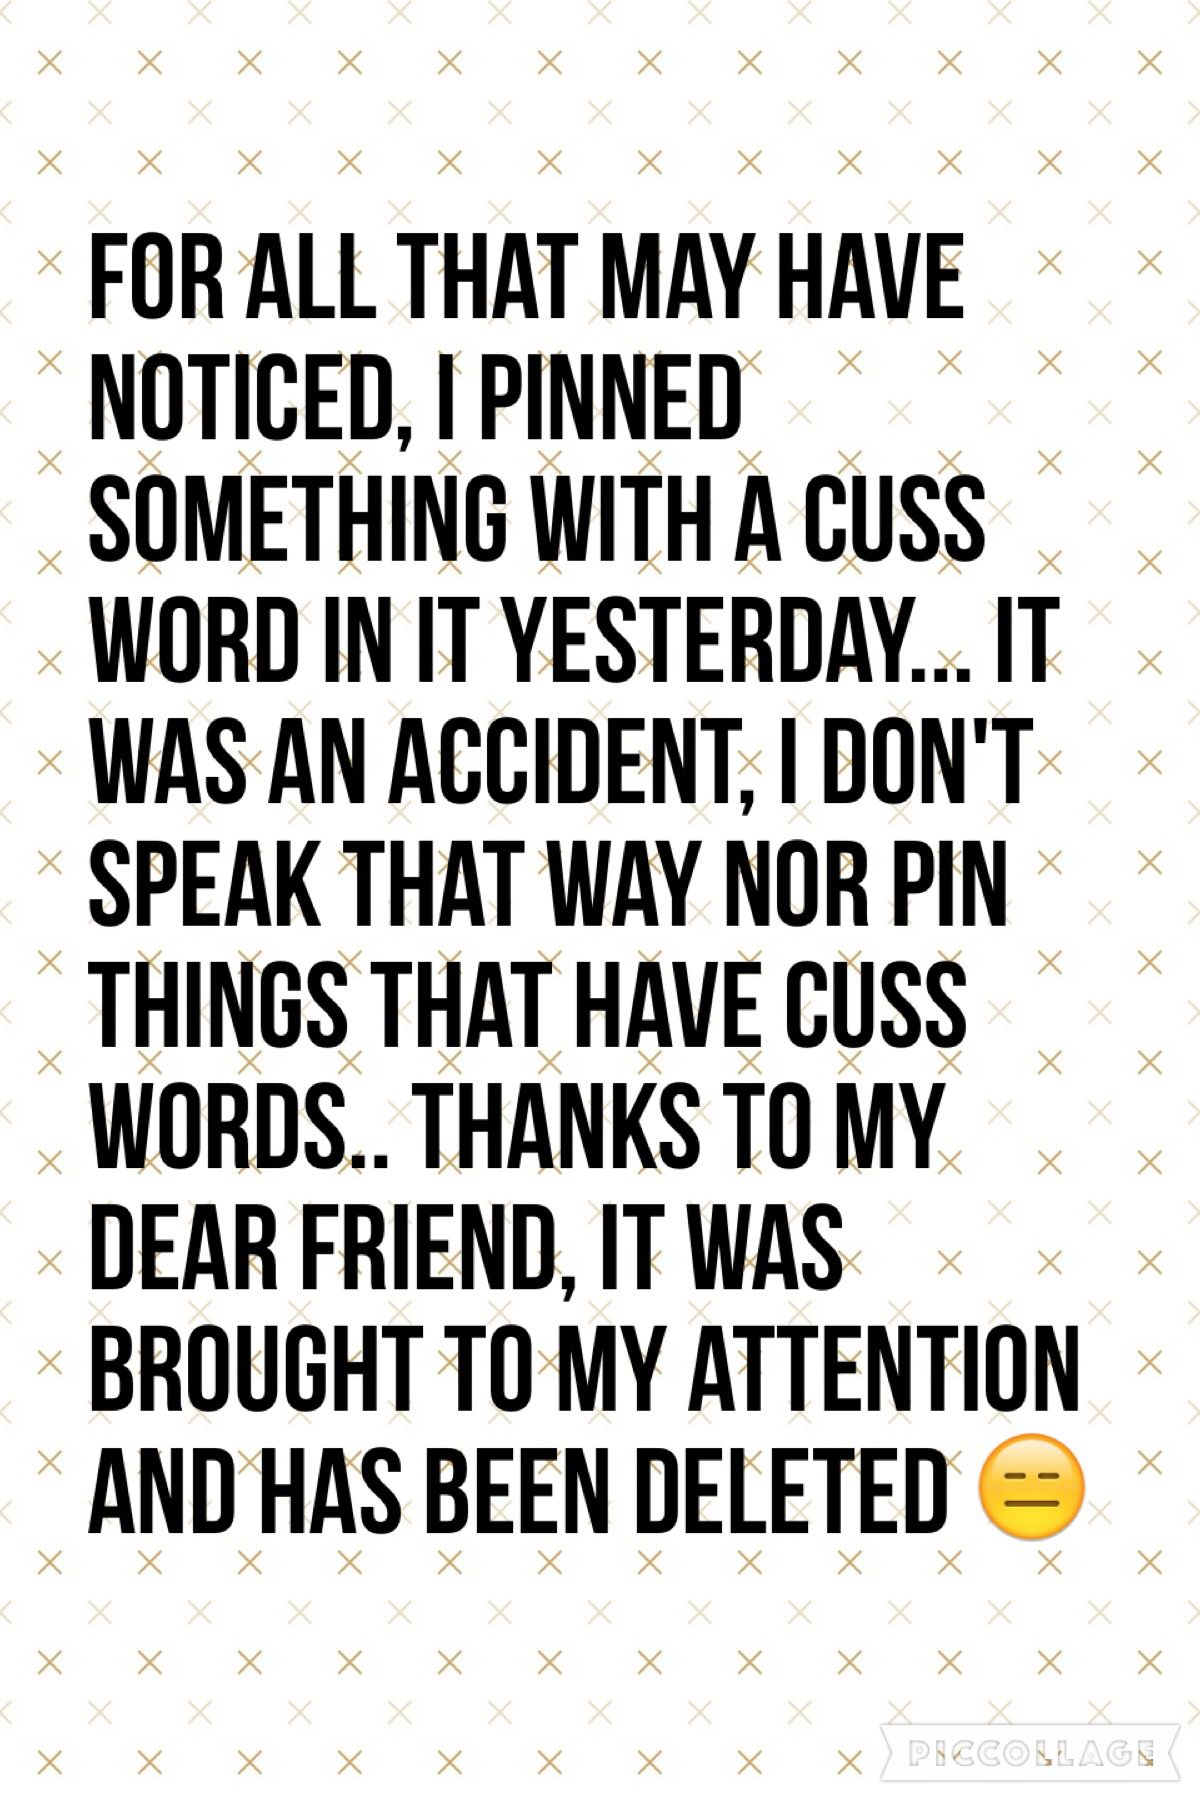 My Apologies Words Cuss Words Funny Memes